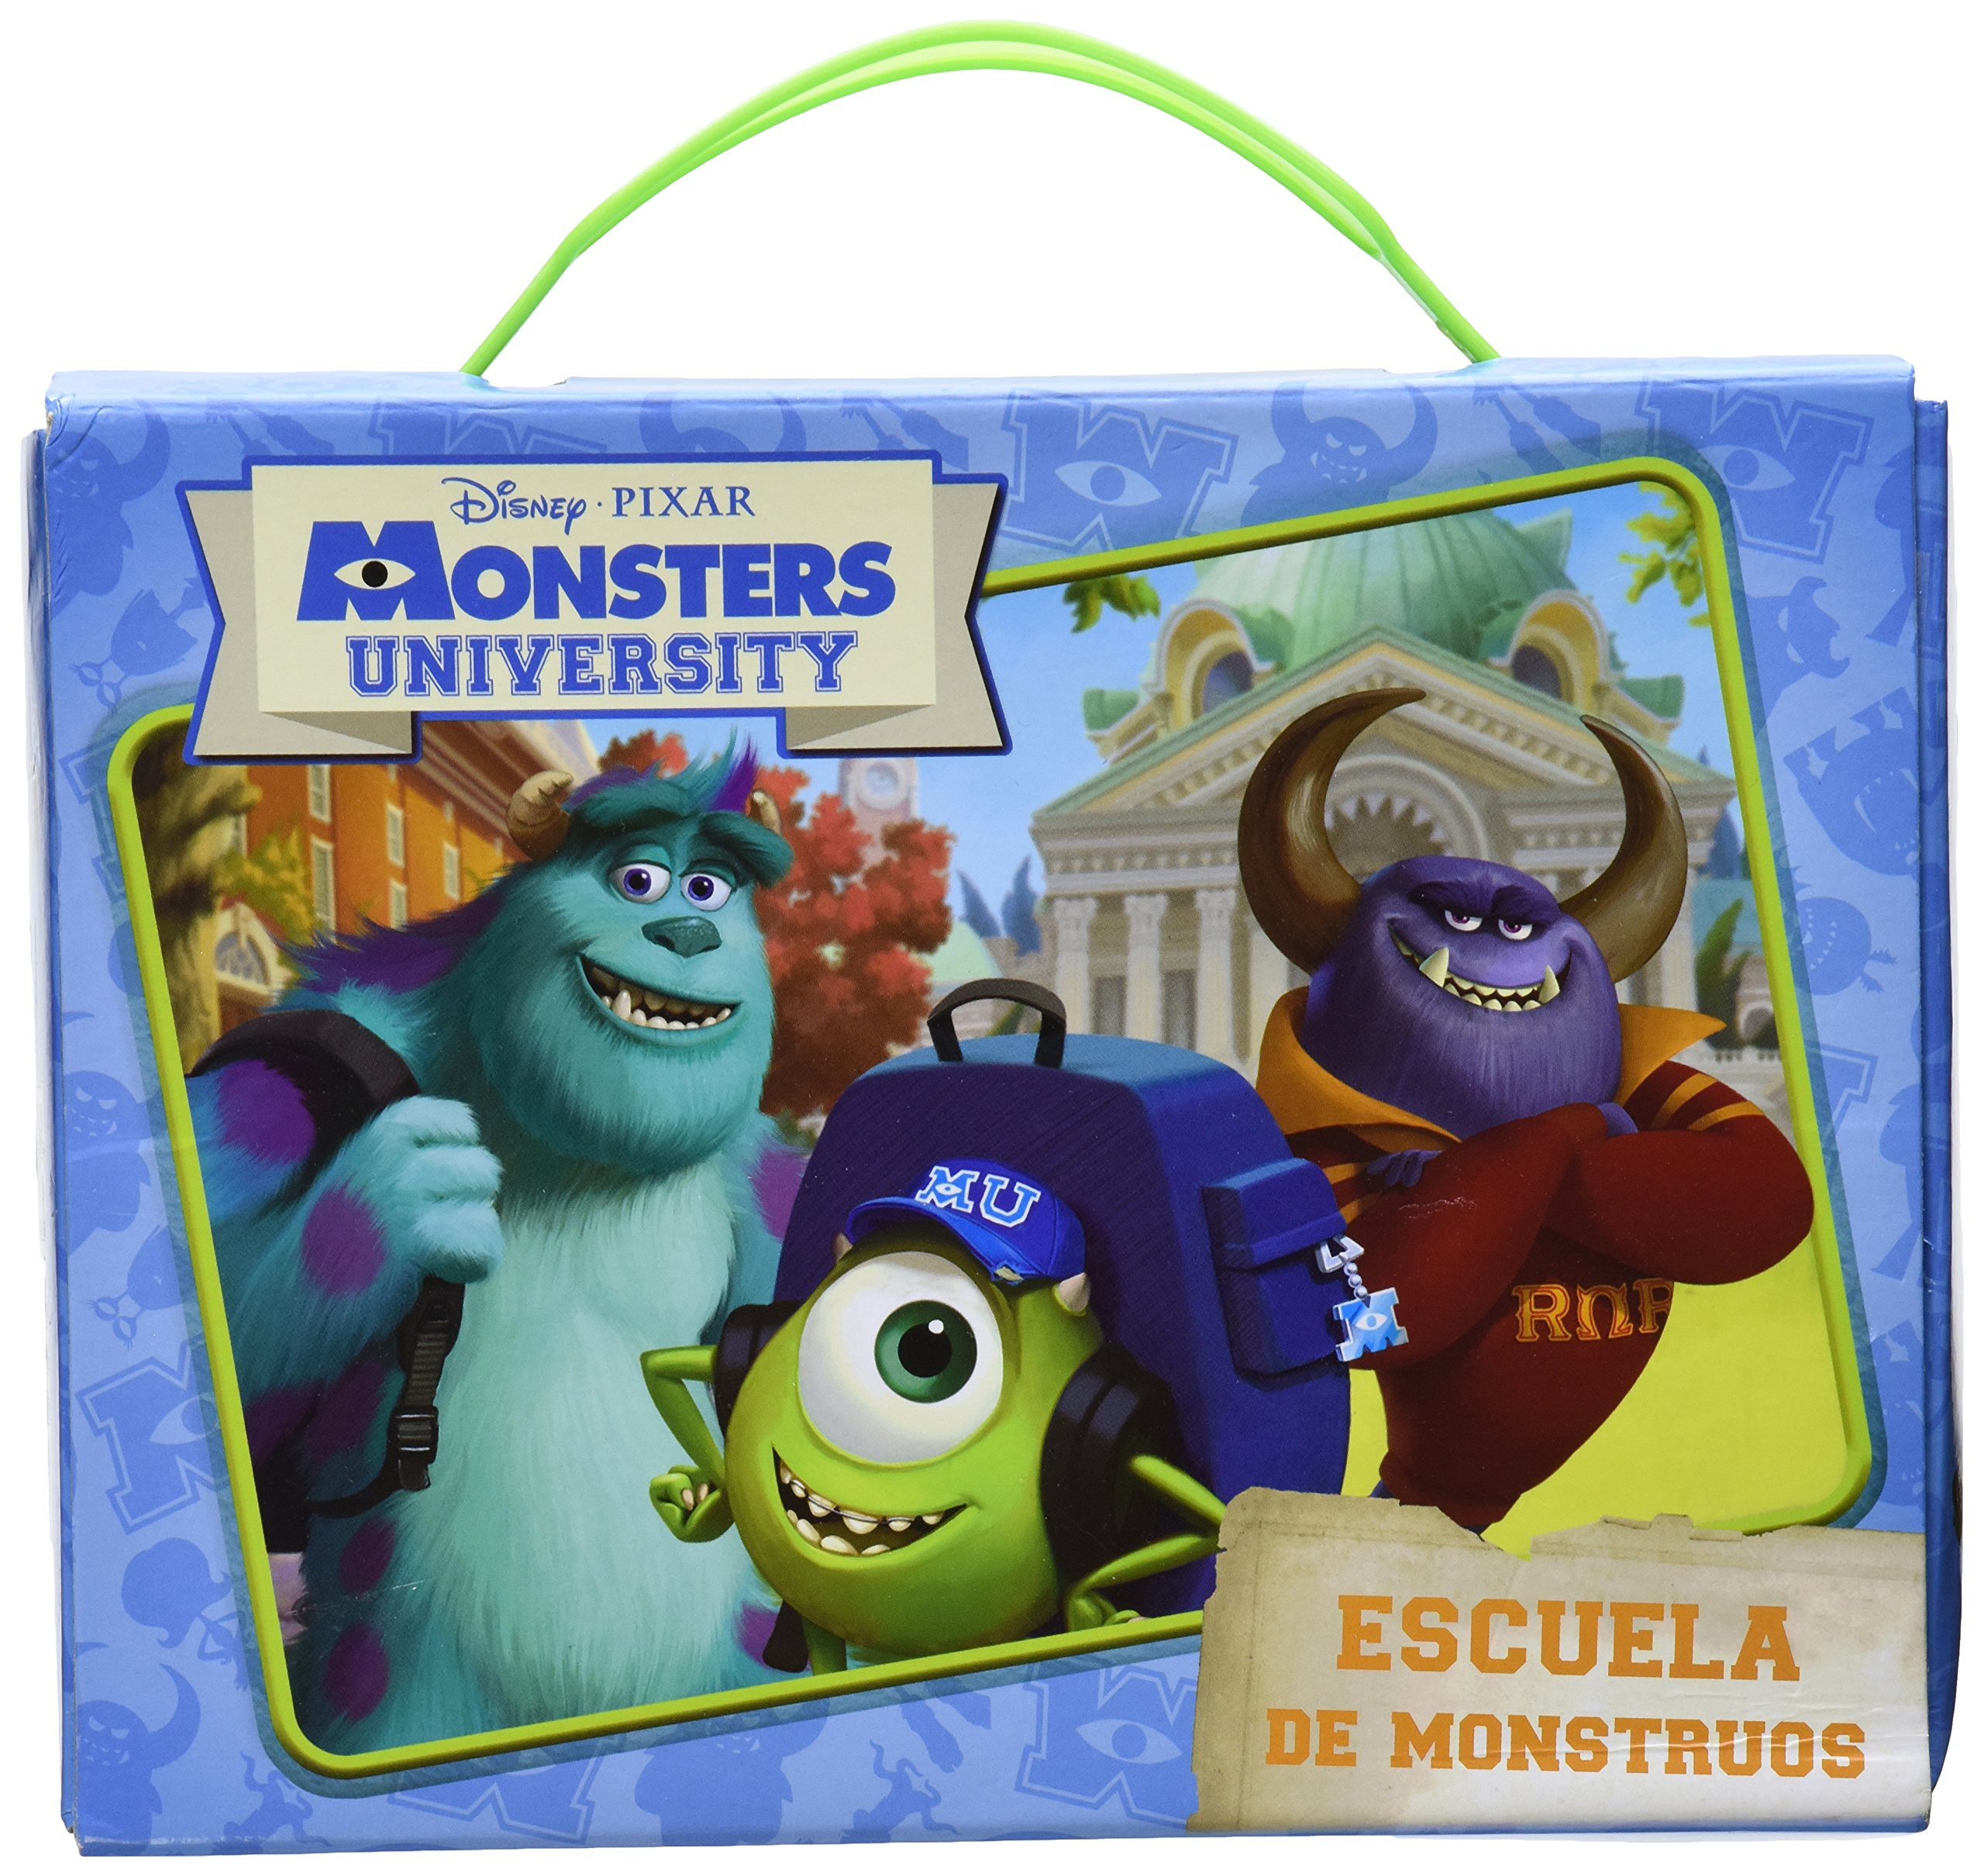 Escuela de monstruos / Monsters University at Monsters ...